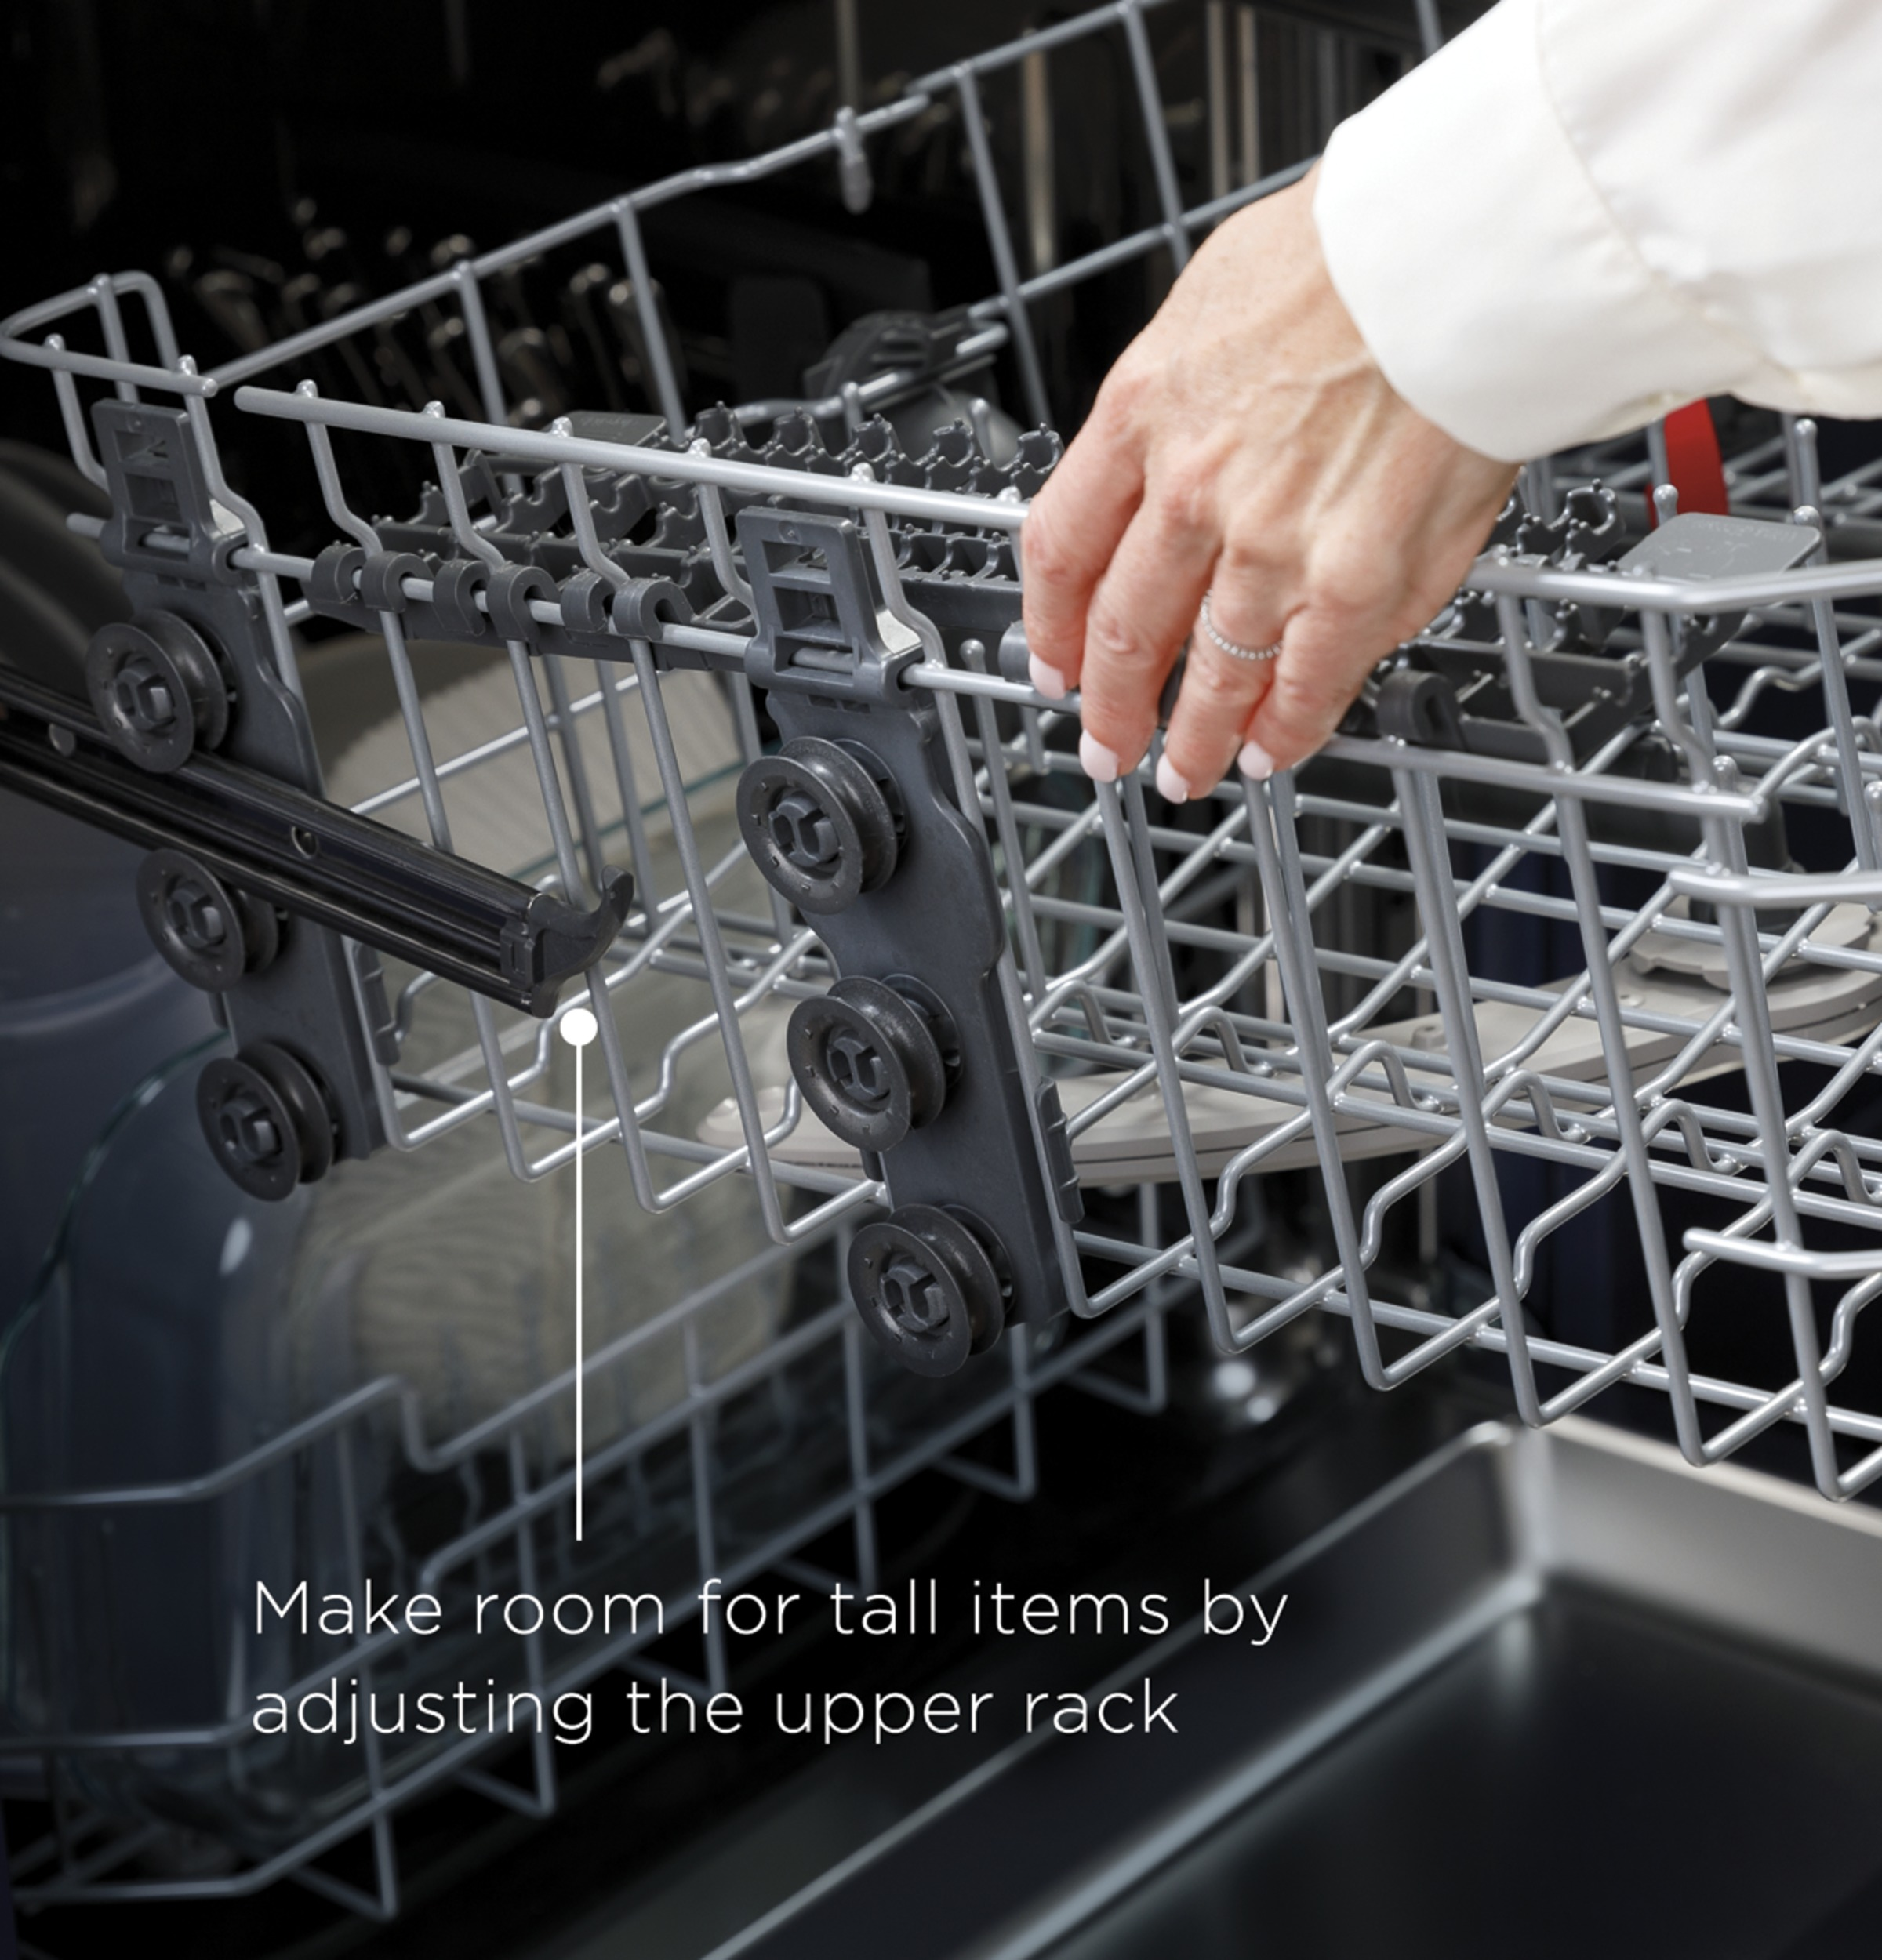 Model: GDF645SSNSS | GE GE® Stainless Steel Interior Dishwasher with Front Controls